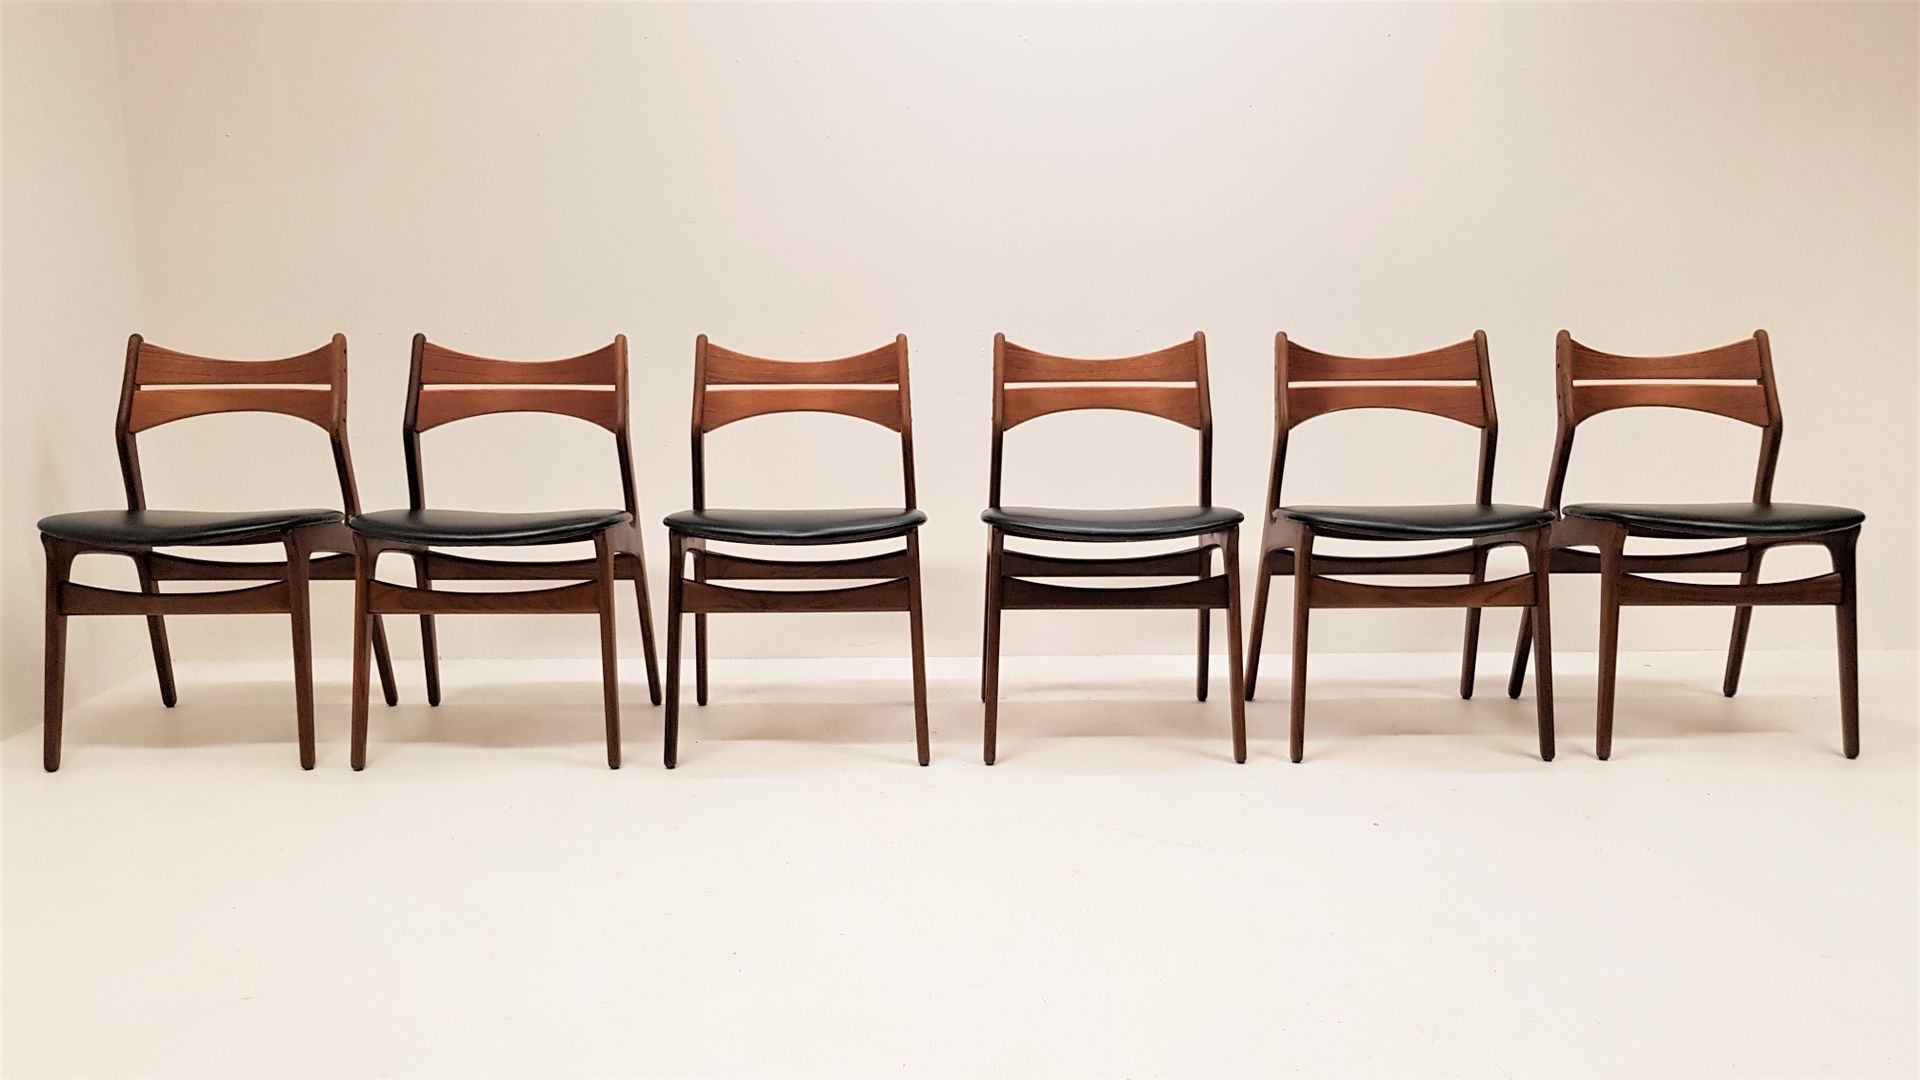 erik buck chairs for sale craigslist model 310 teak dining by buch set of 6 at pamono